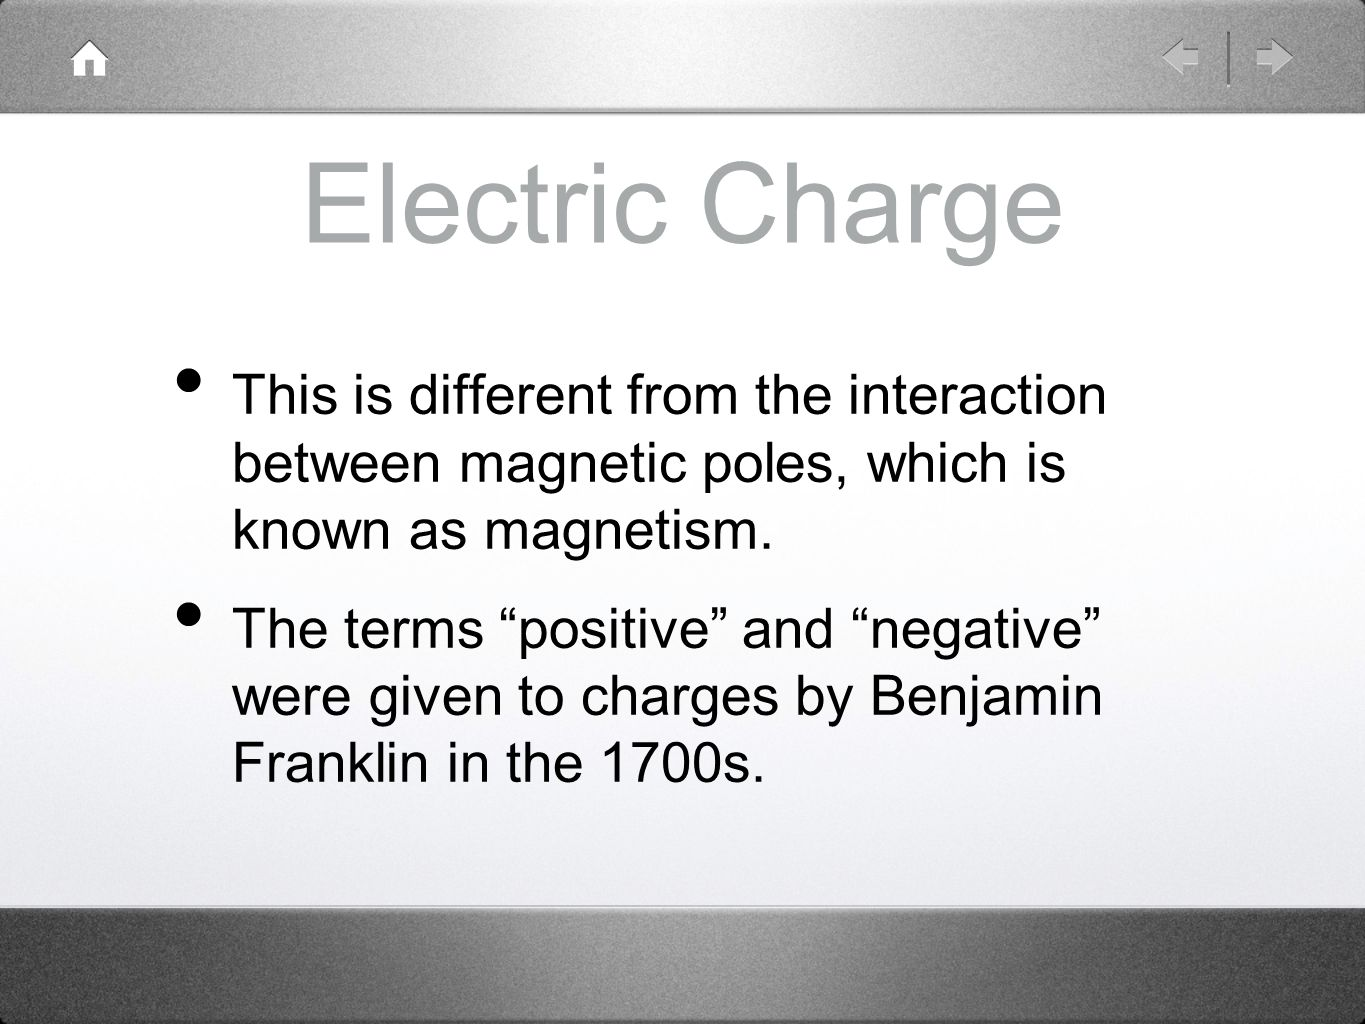 Electric Charge This is different from the interaction between magnetic poles, which is known as magnetism.